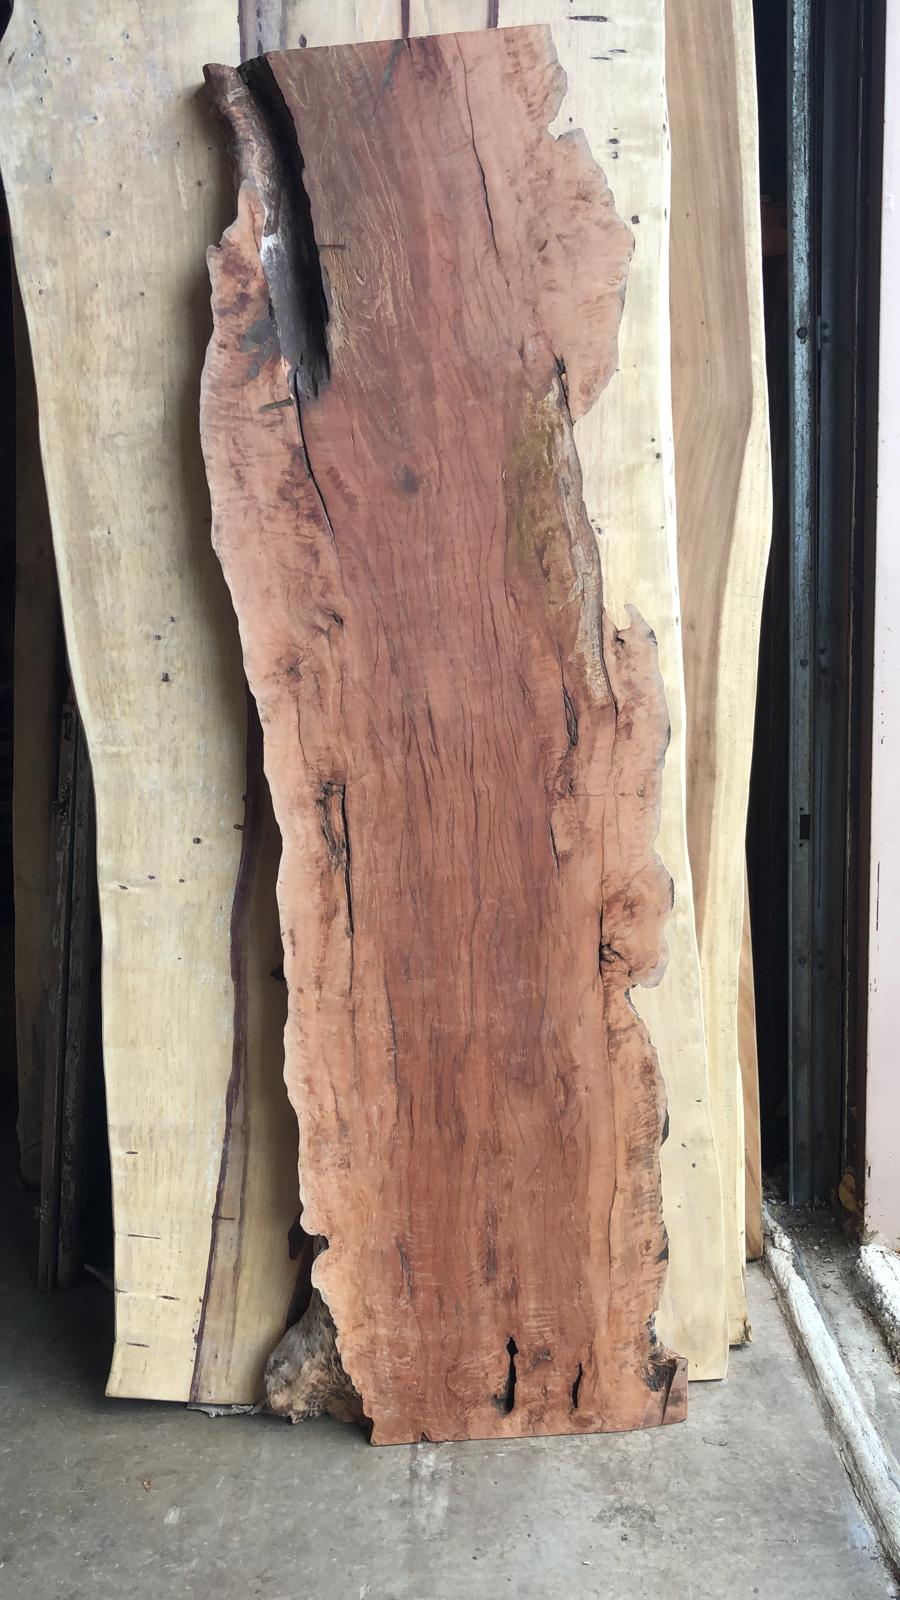 Rustic live edge wood slab 86